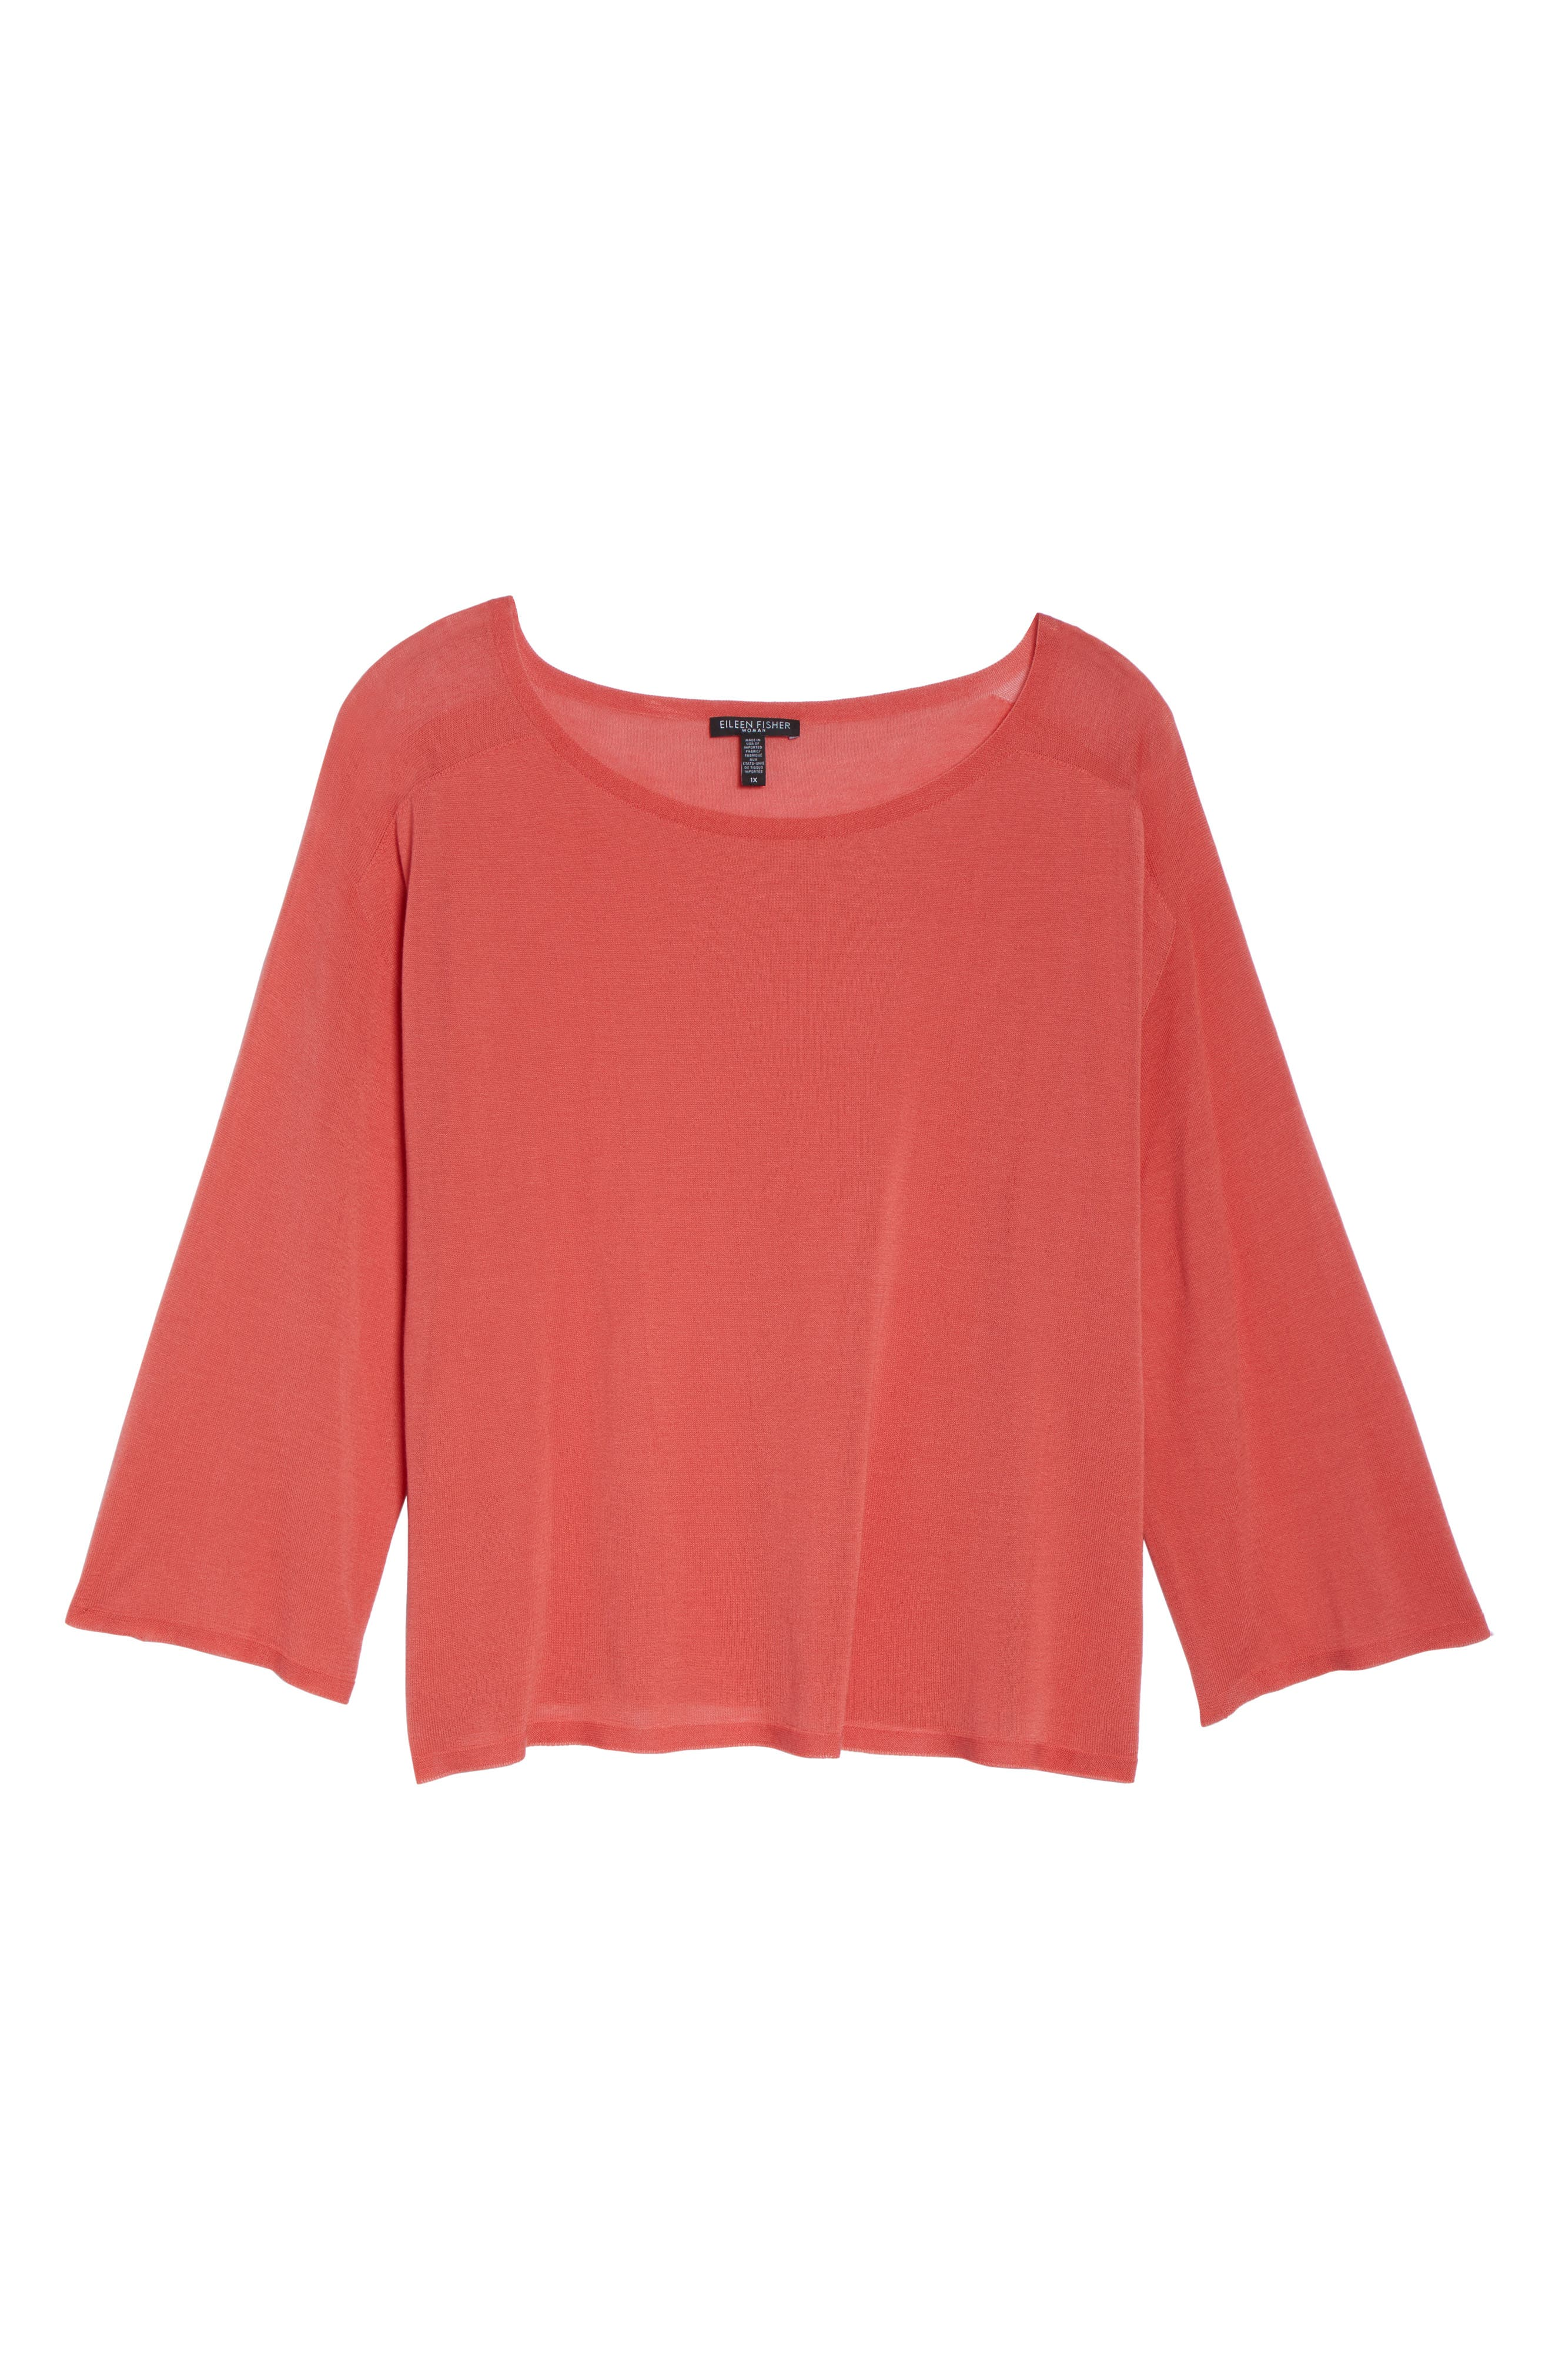 Tencel<sup>®</sup> Lyocell Lyocell Knit Sweater,                             Alternate thumbnail 12, color,